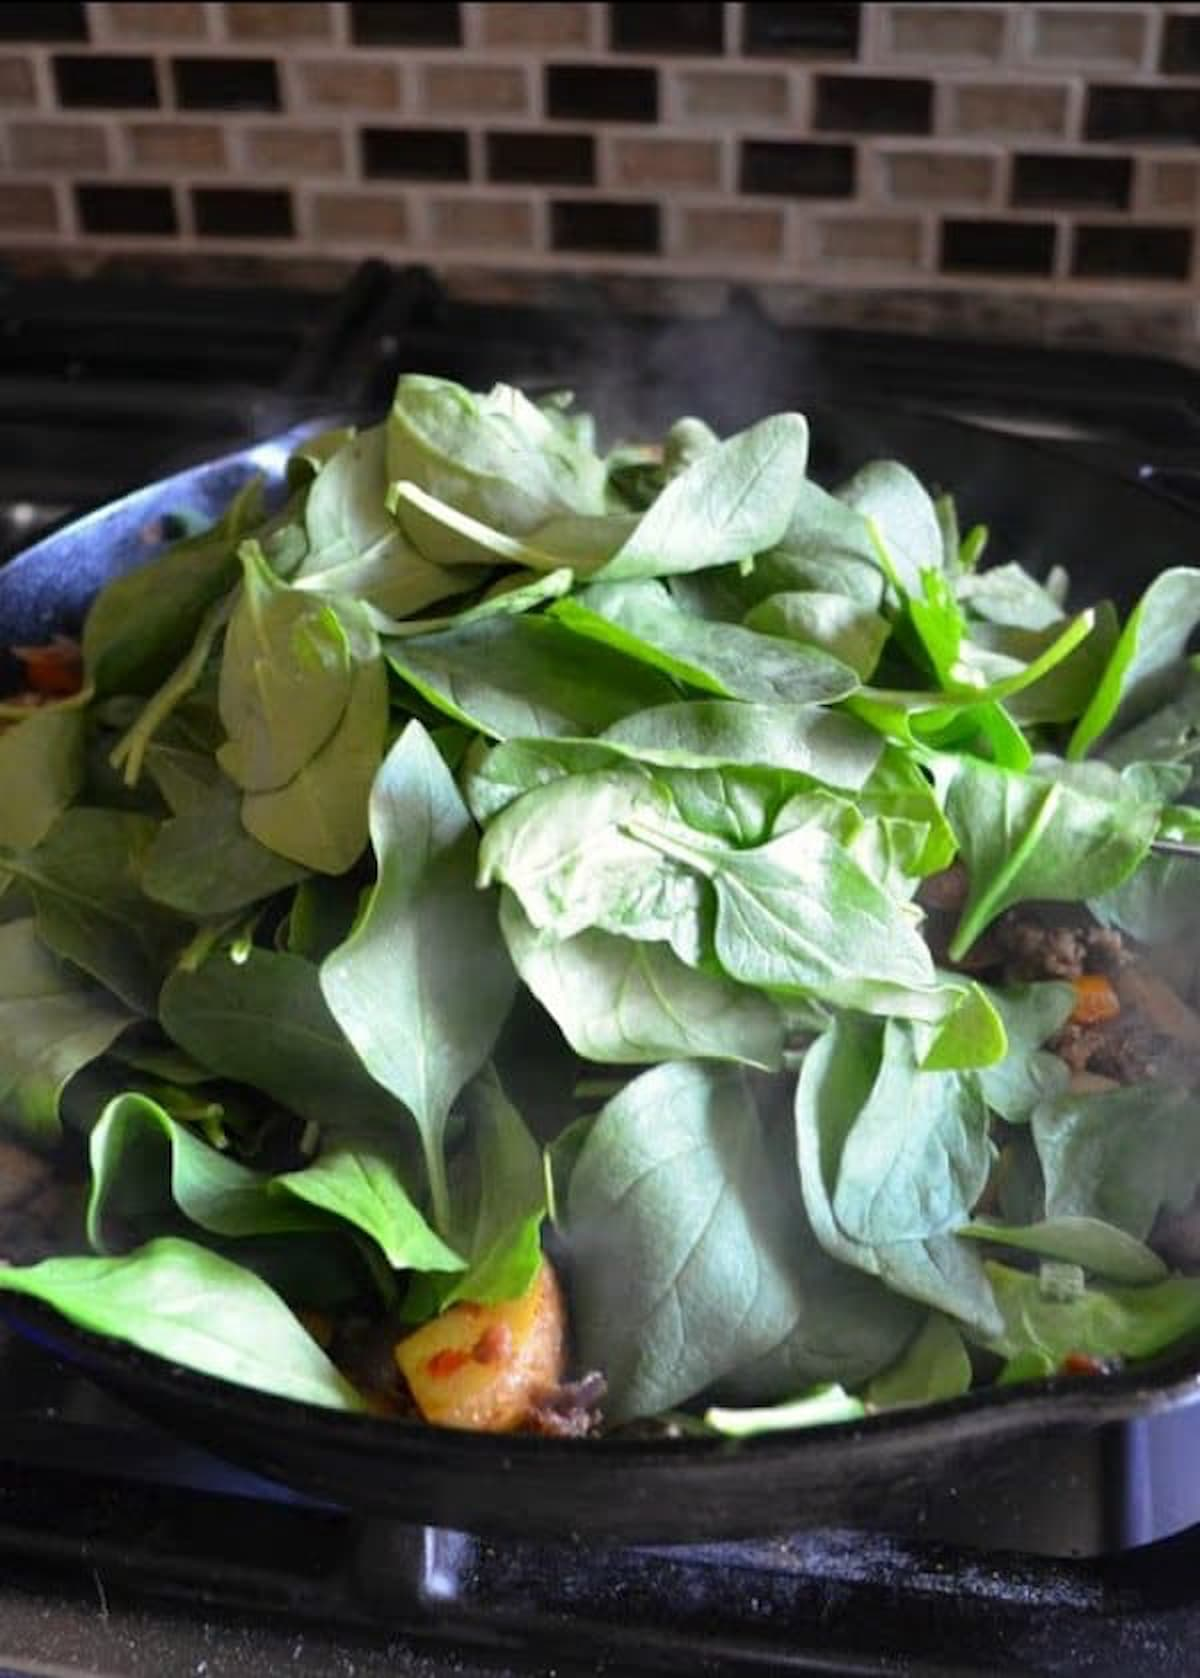 Spinach added breakfast burrito filling in a cast iron pan.